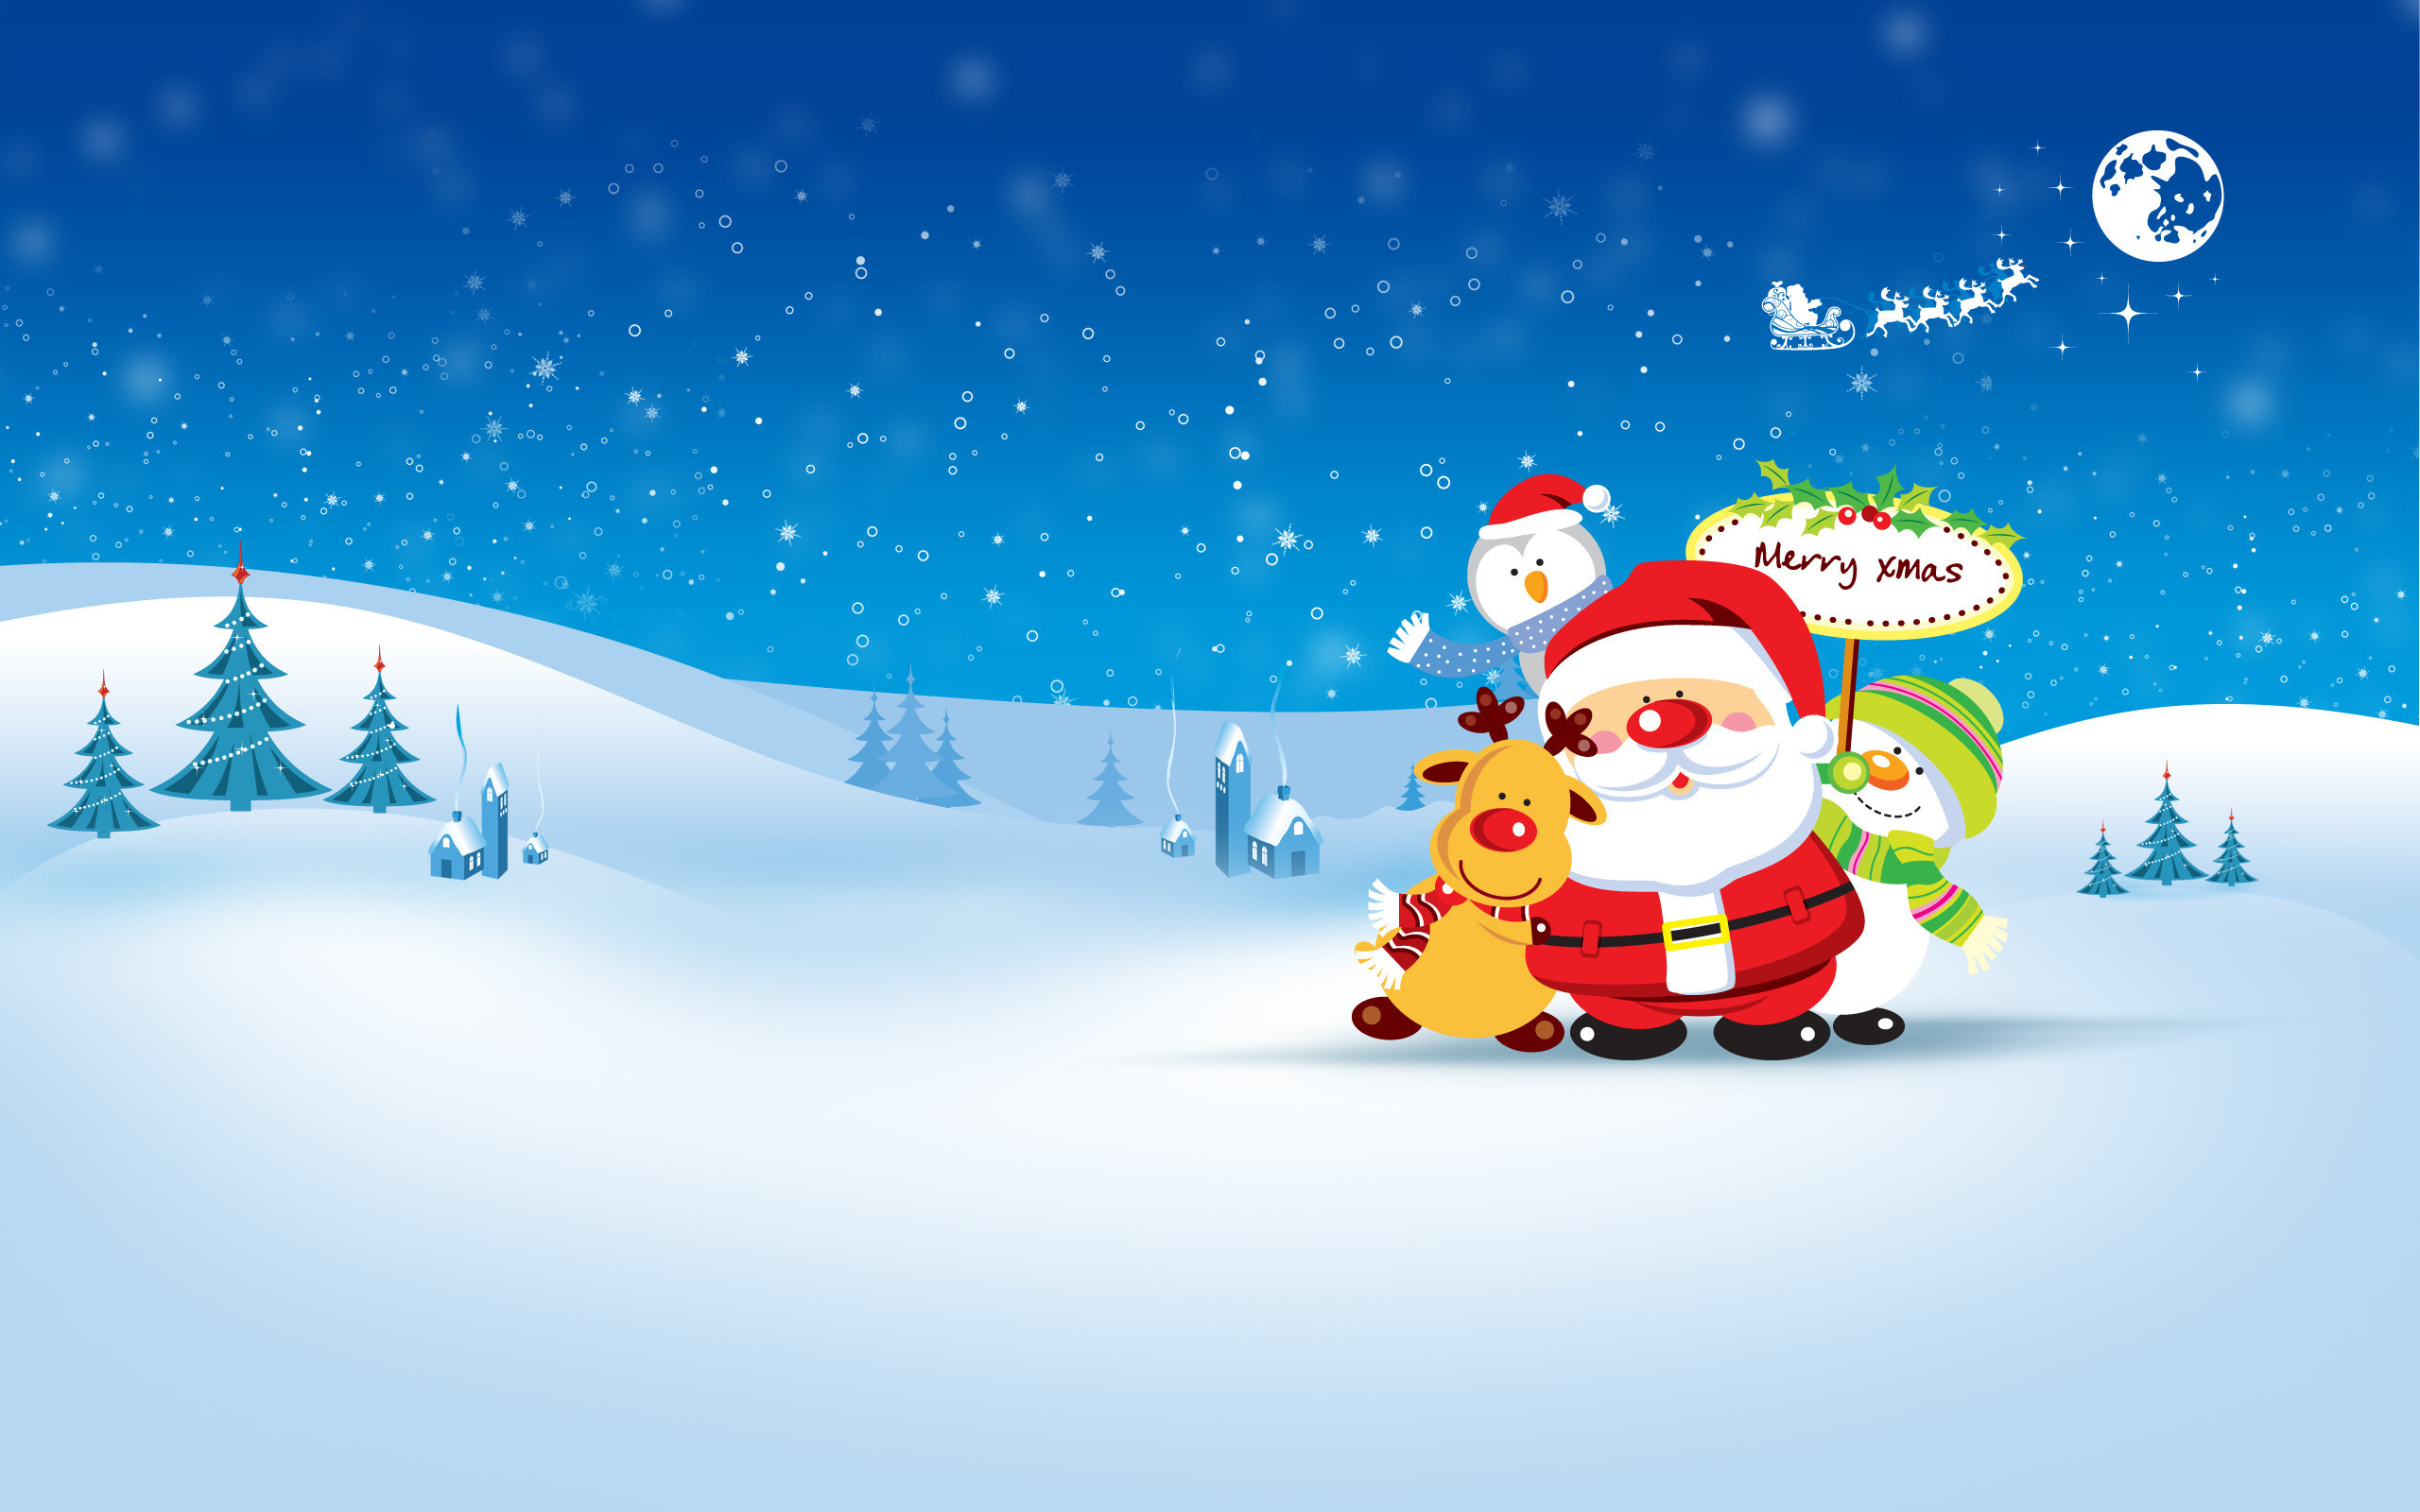 Free Animated Christmas Wallpaper For Desktop 3